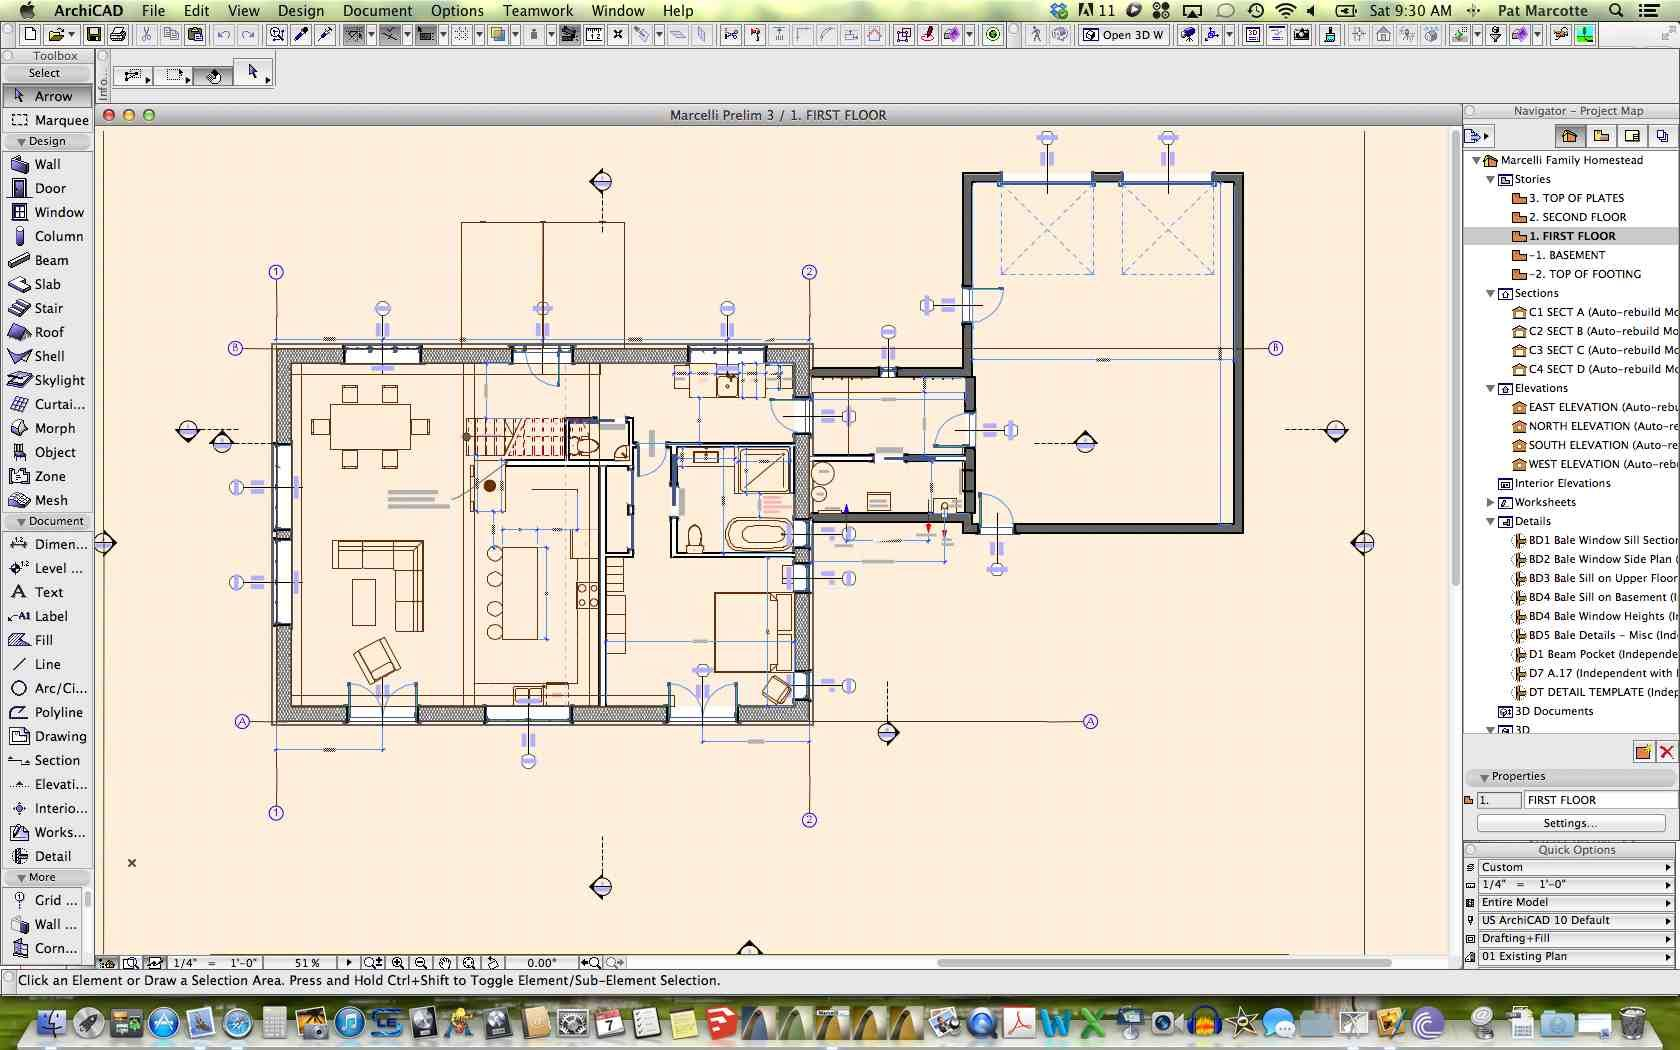 Havencraft design portfolio floor plans in archicad